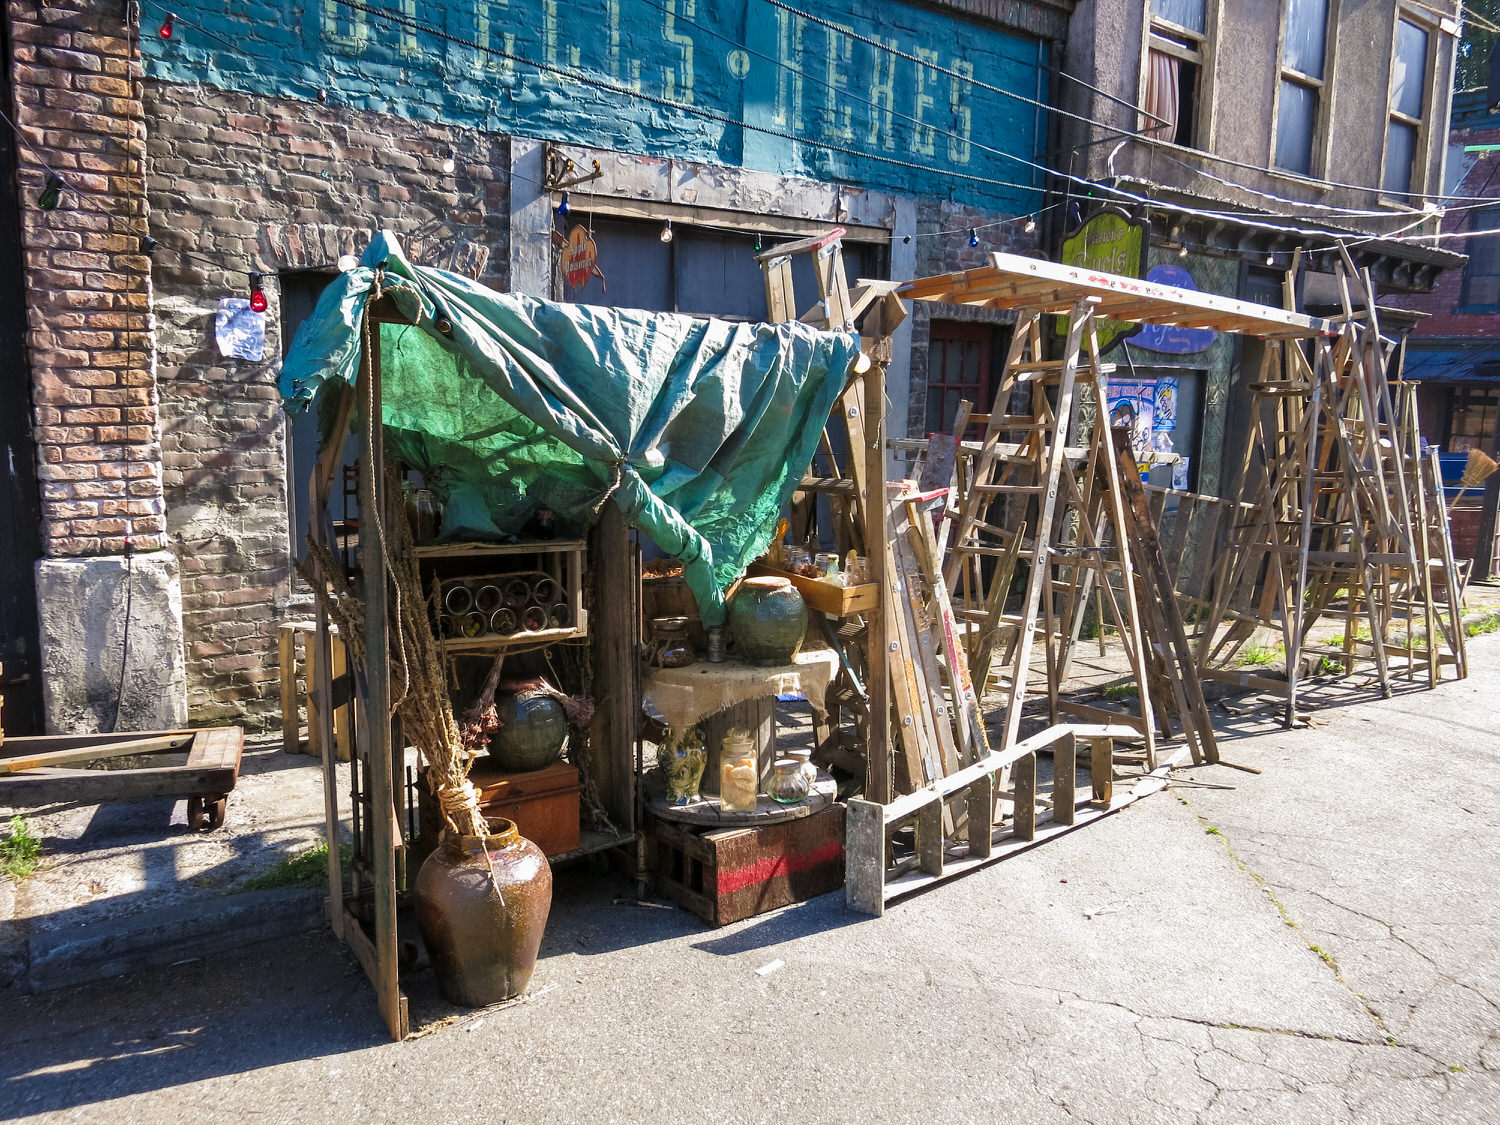 Street detail of vendor's shacks on the Isle of the Lost. The vendor on the right of frame specializes in broken ladders.